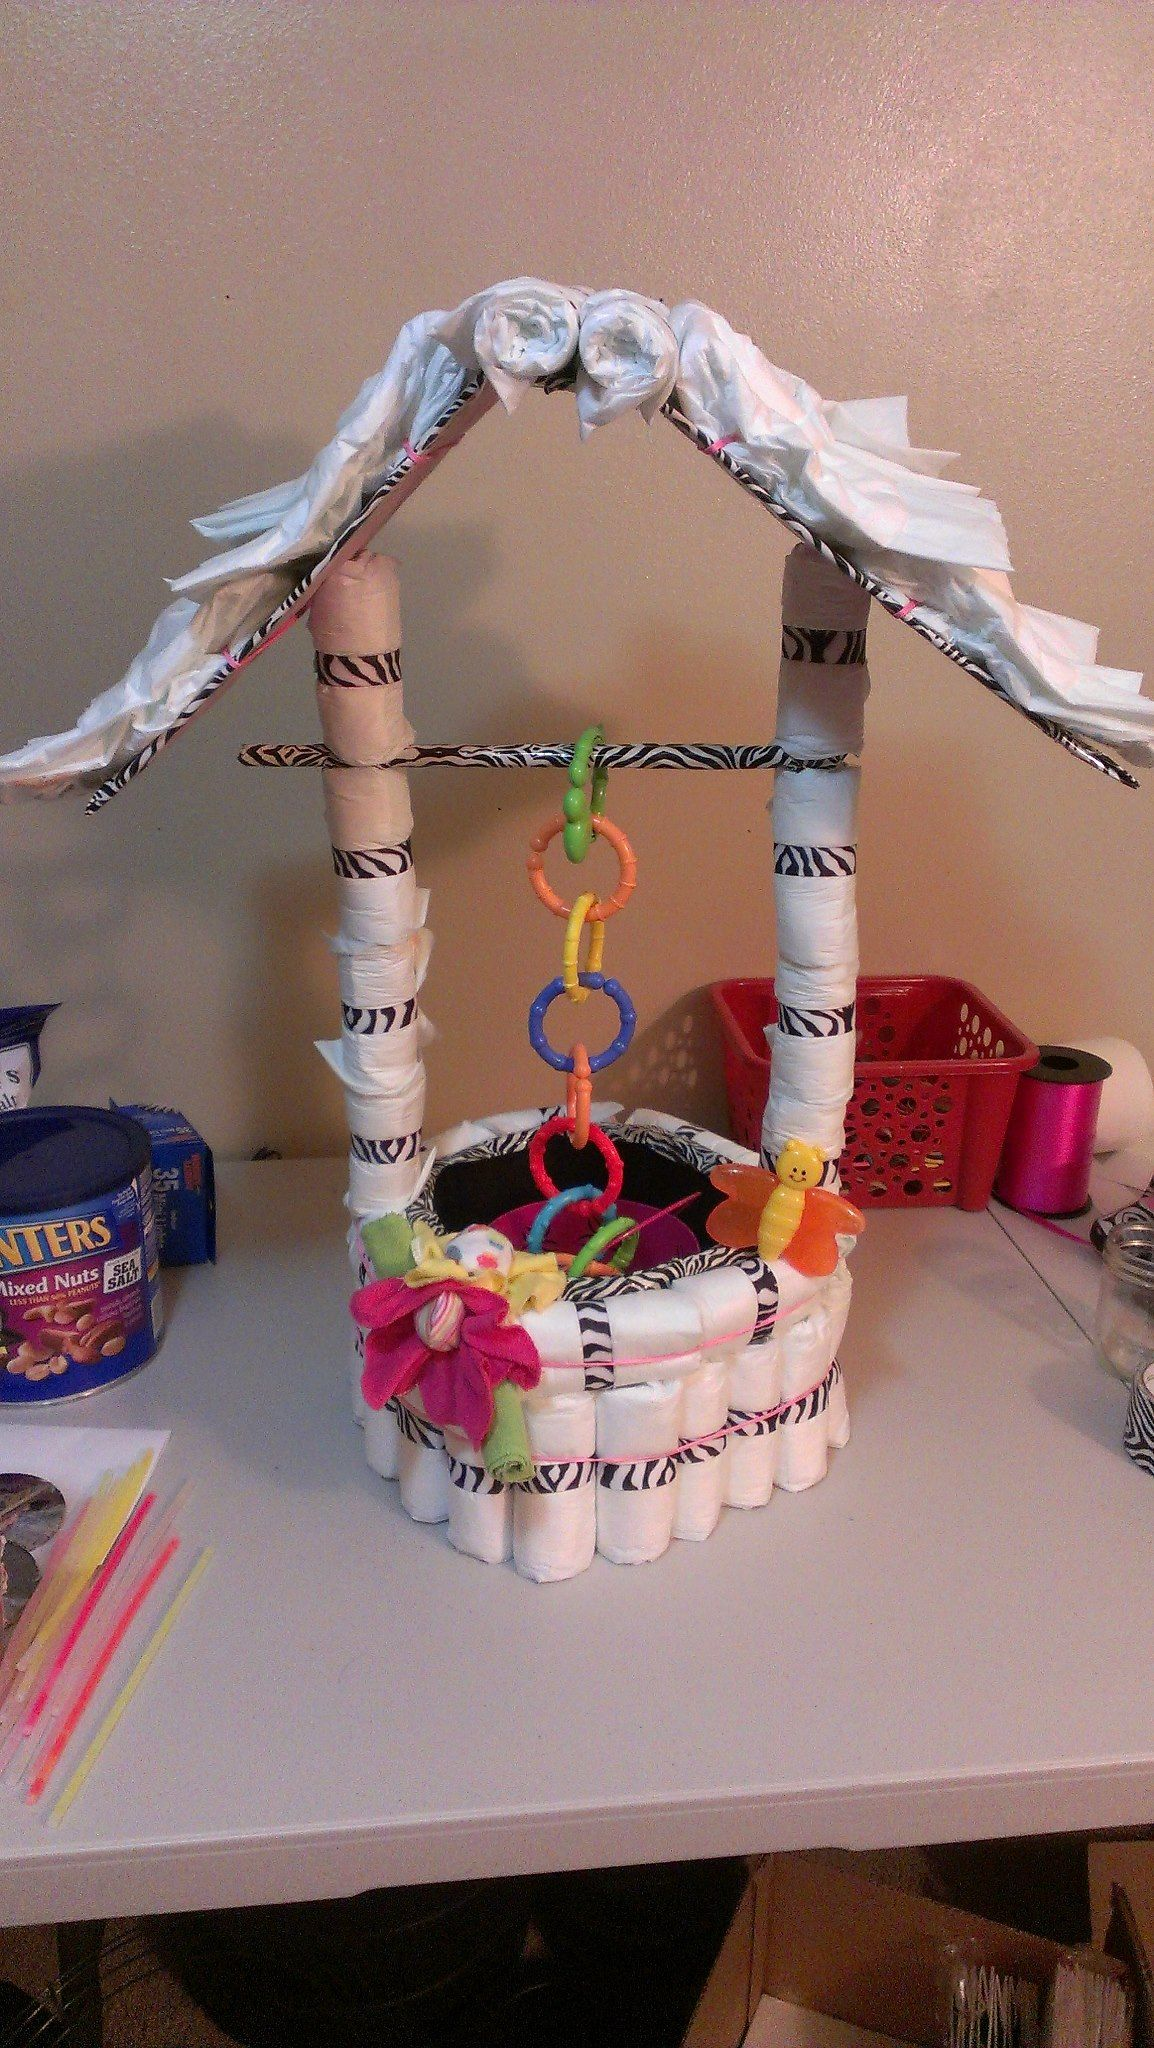 My very own idea and creation a wishing well made out of diapers